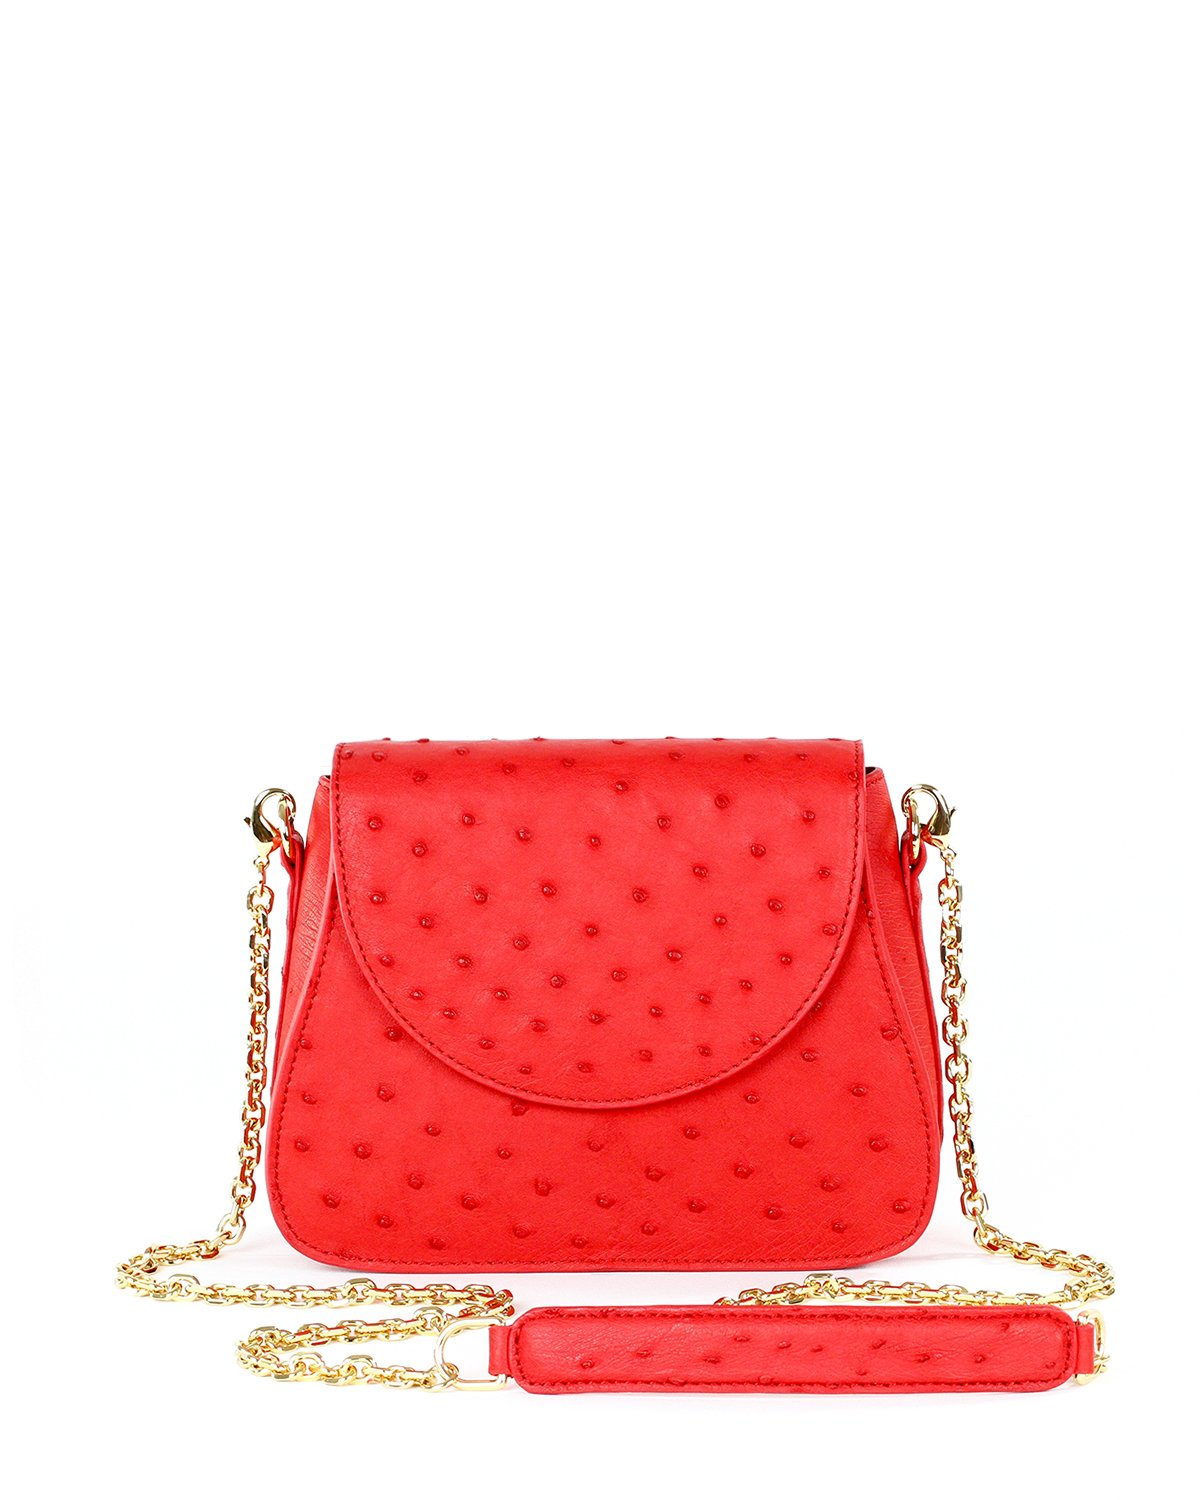 Genuine Ostrich Yara Bashoor Tomato Red Crossbody Front Image with Shoulder Pad and Chain Shoulder Strap